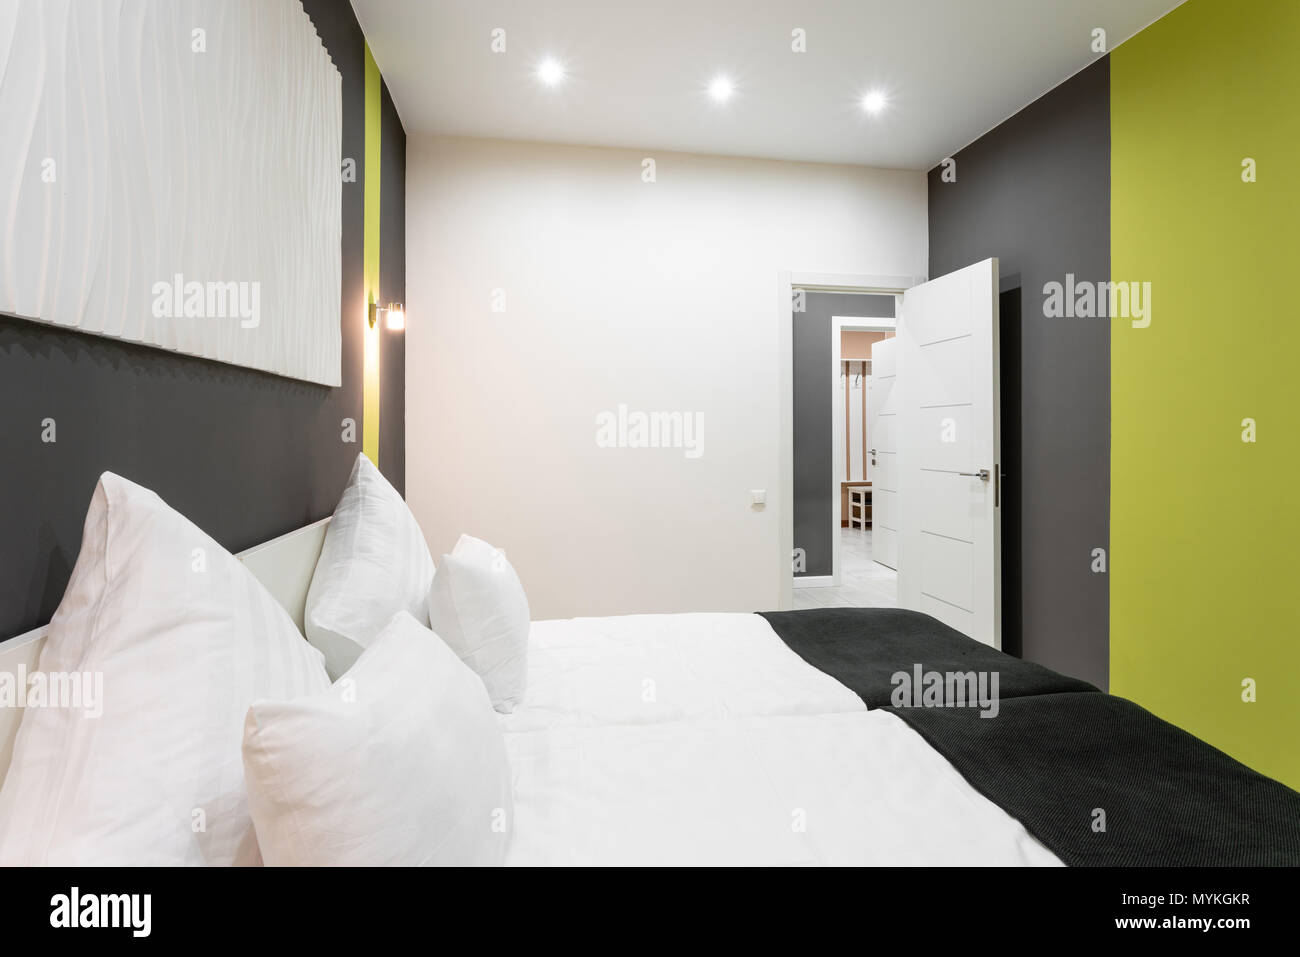 Hotel Standart Room Modern Bedroom With White Pillows Simple And Stylish Interior Interior Lighting Stock Photo Alamy